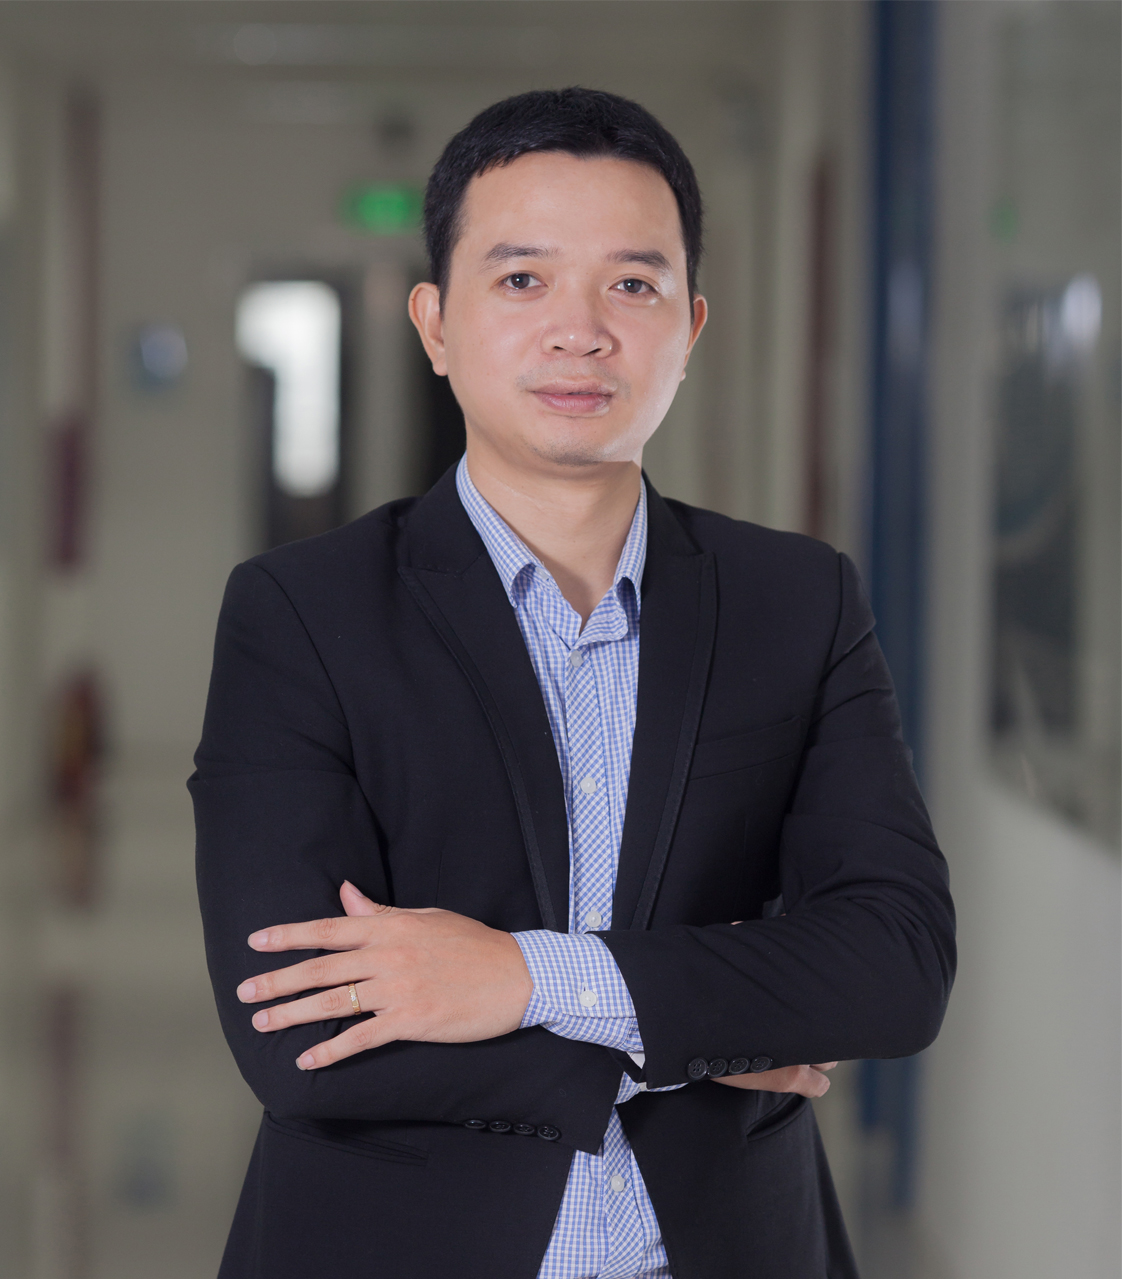 Mr. Trinh Duy Dong